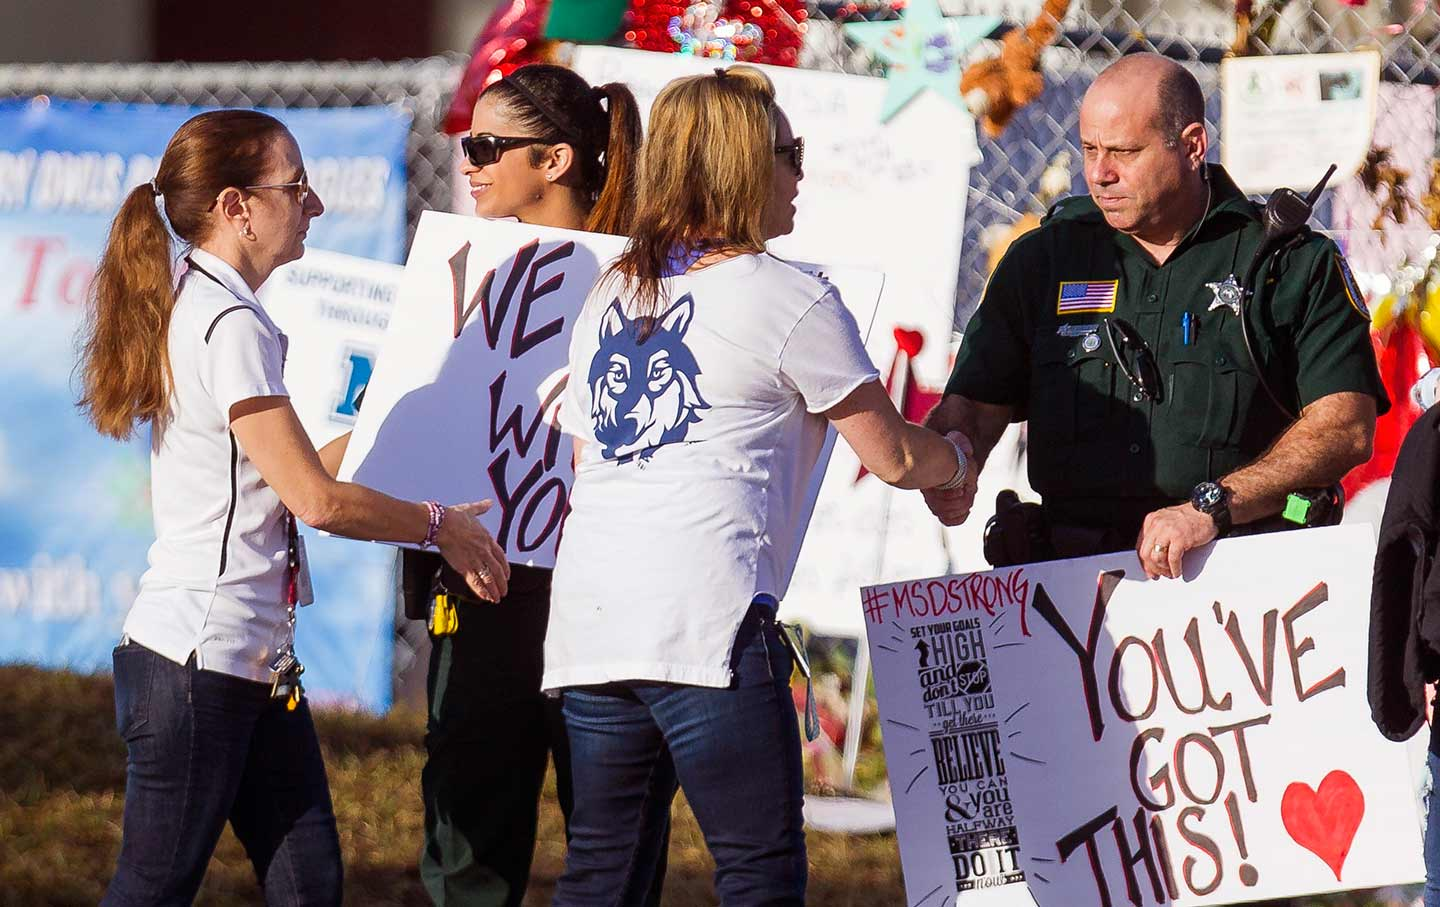 Teachers return to Marjory Stoneman Douglas High School